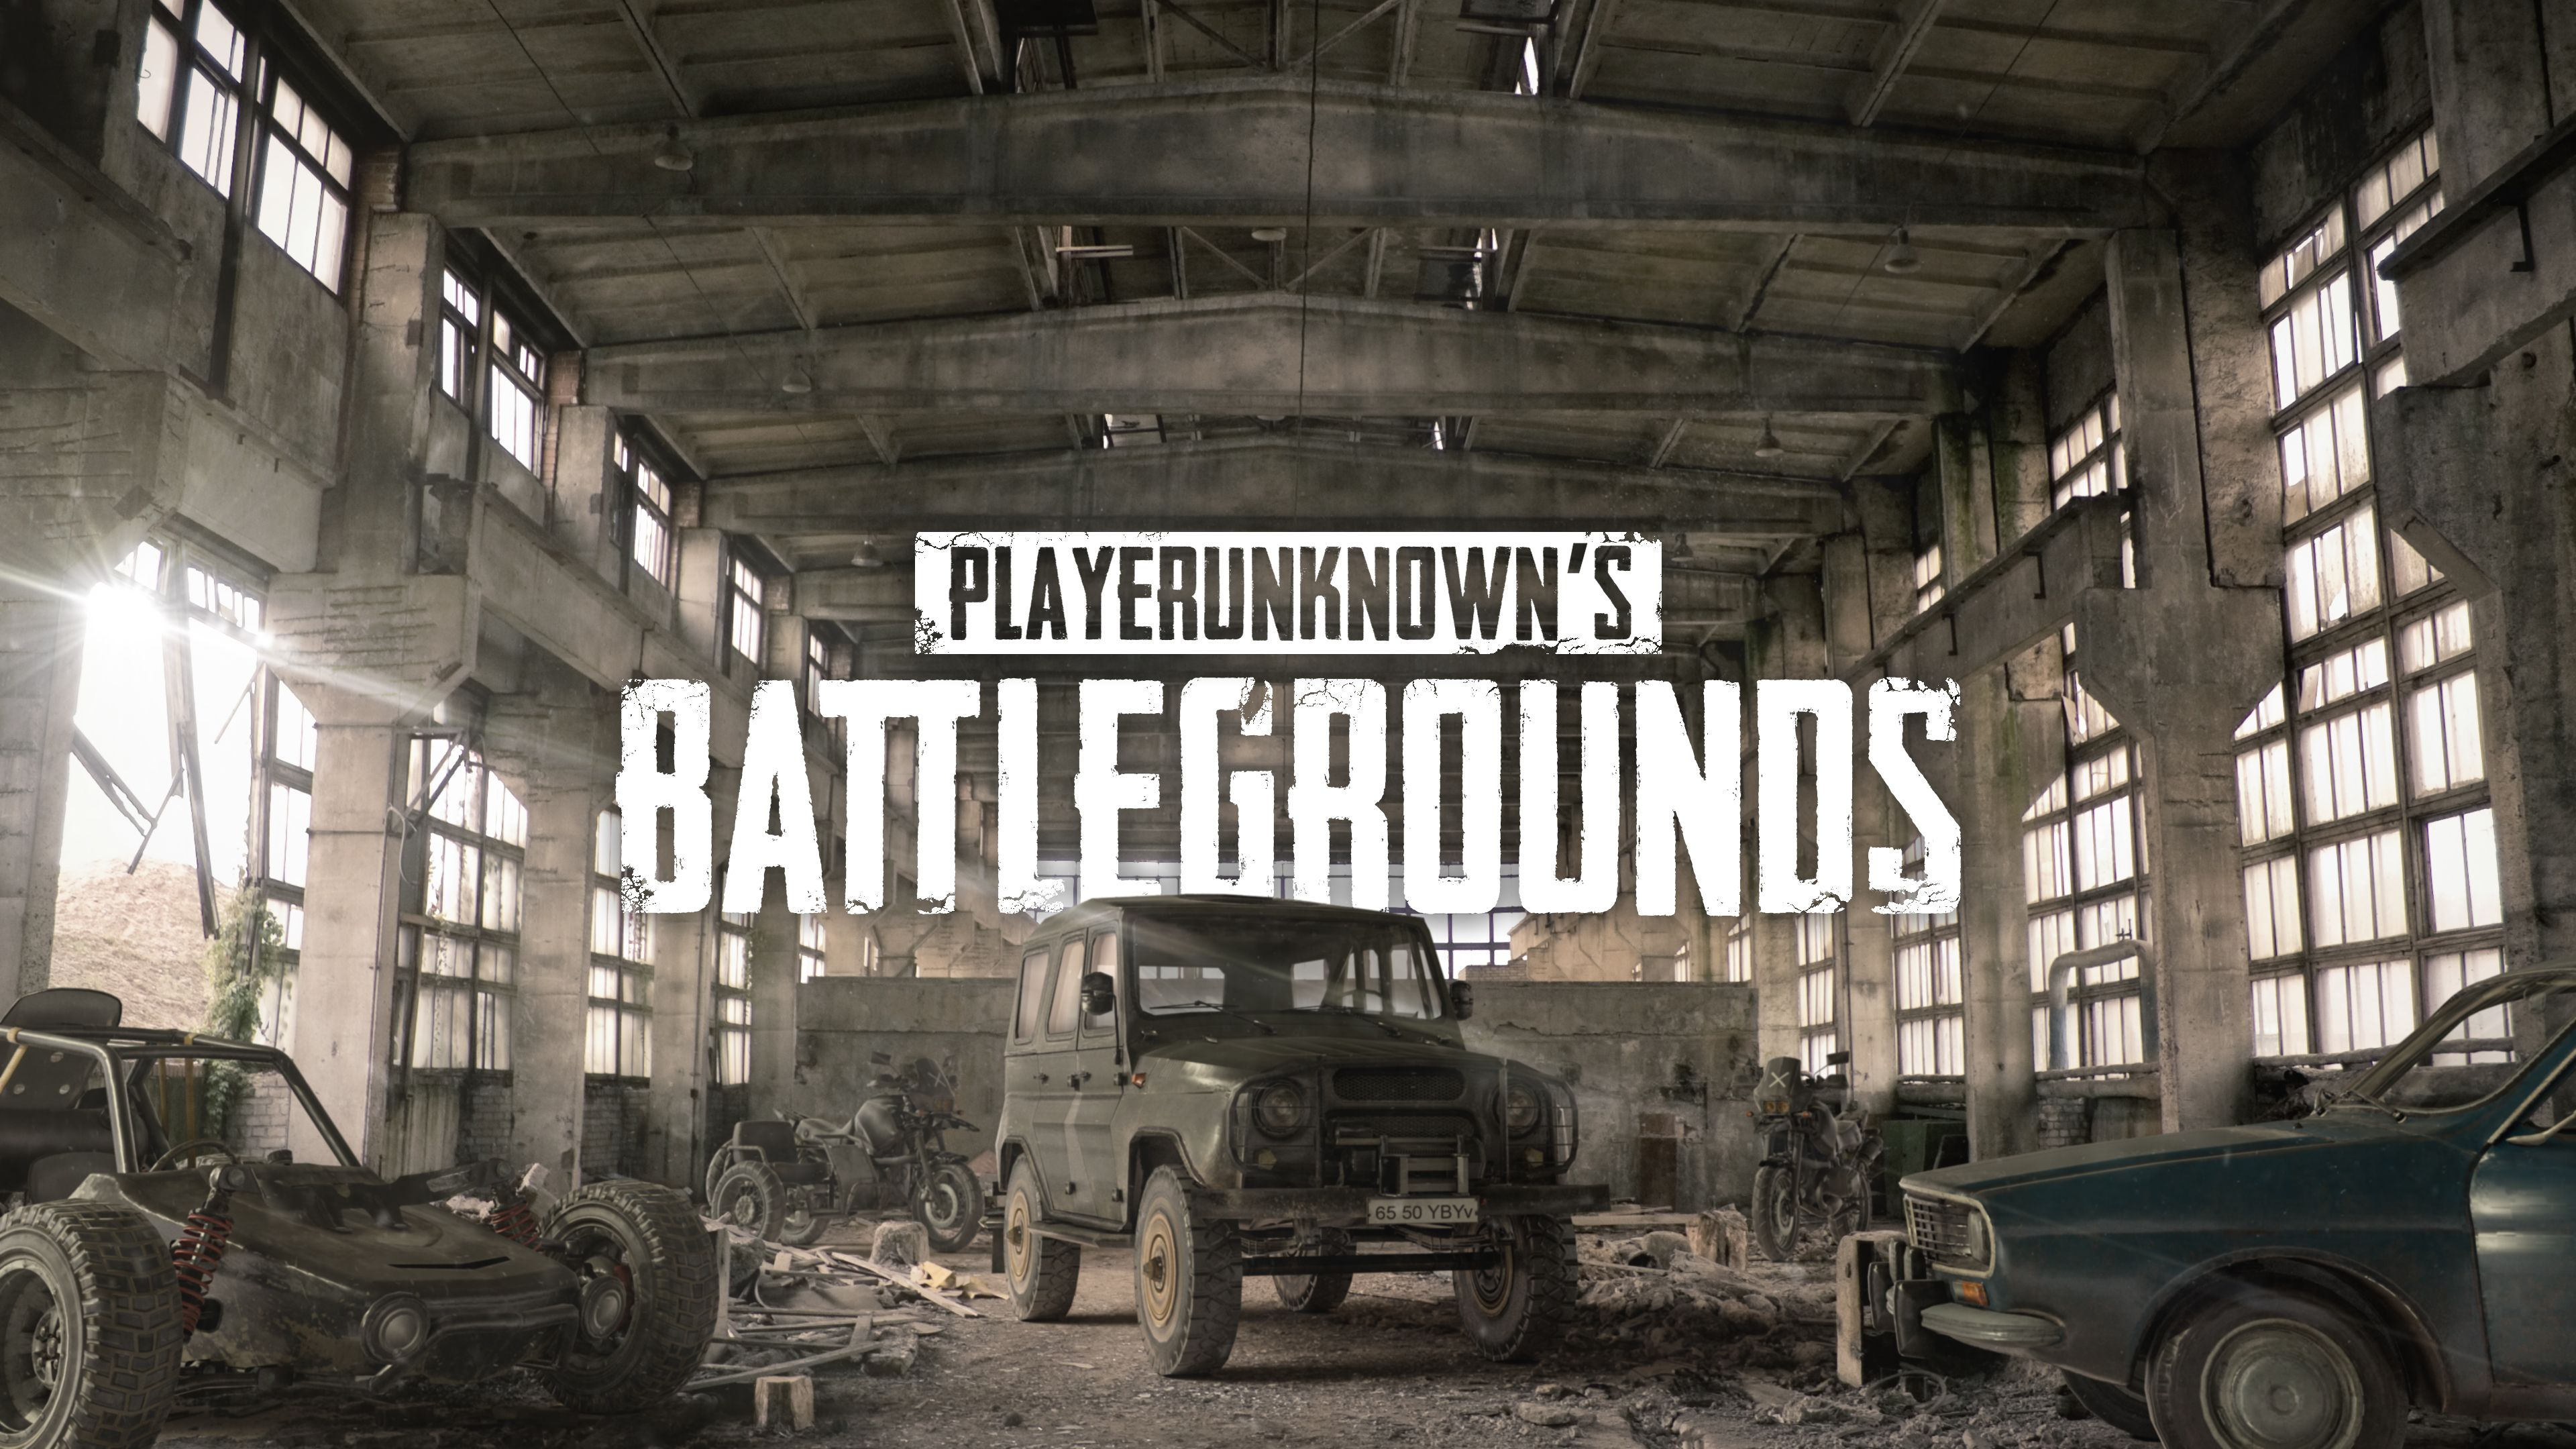 Pubg Video Game 4k Pubg Wallpapers Playerunknowns Battlegrounds Wallpapers Hd Wallpapers Games Wallpapers Wallpaper Pc Pubg Wallpapers Hd Wallpapers For Pc